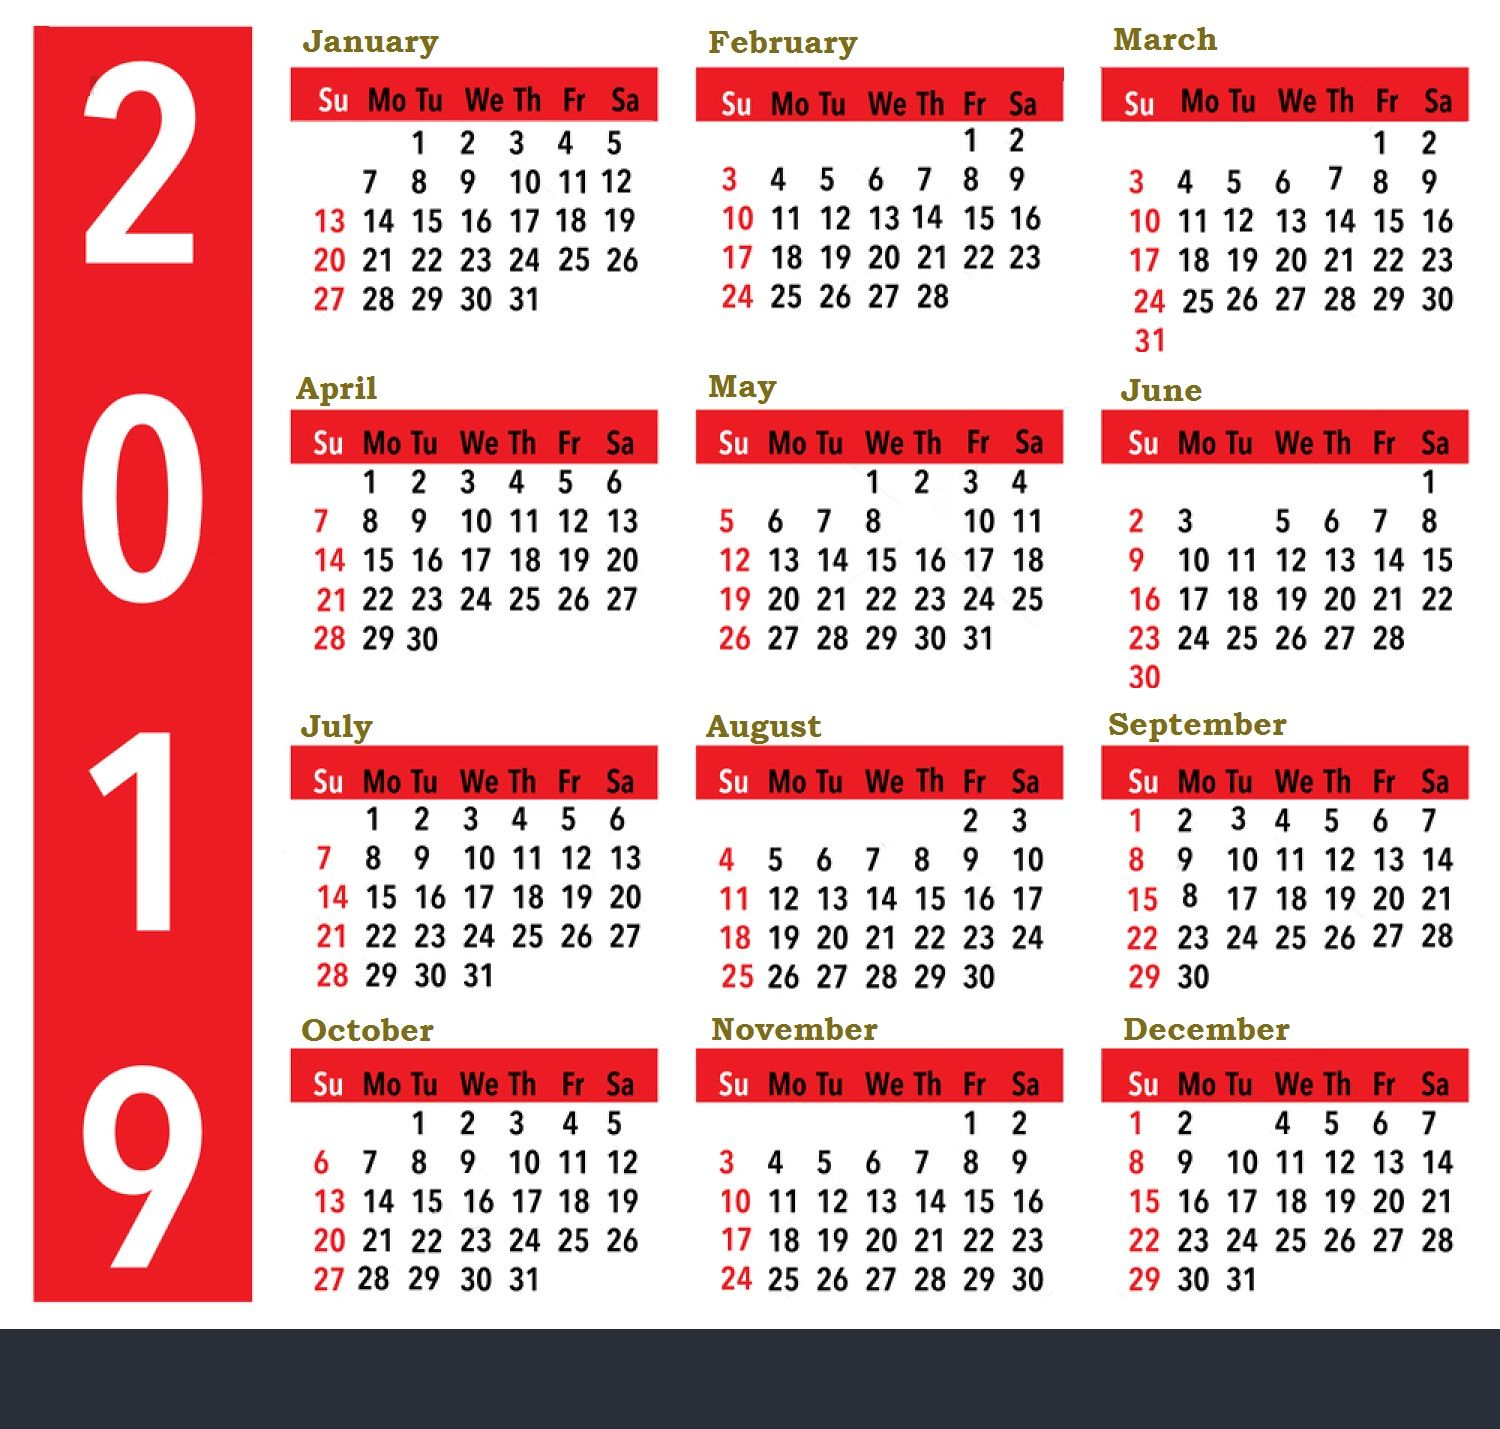 2019 calendar for united states holidays all important dates and events list